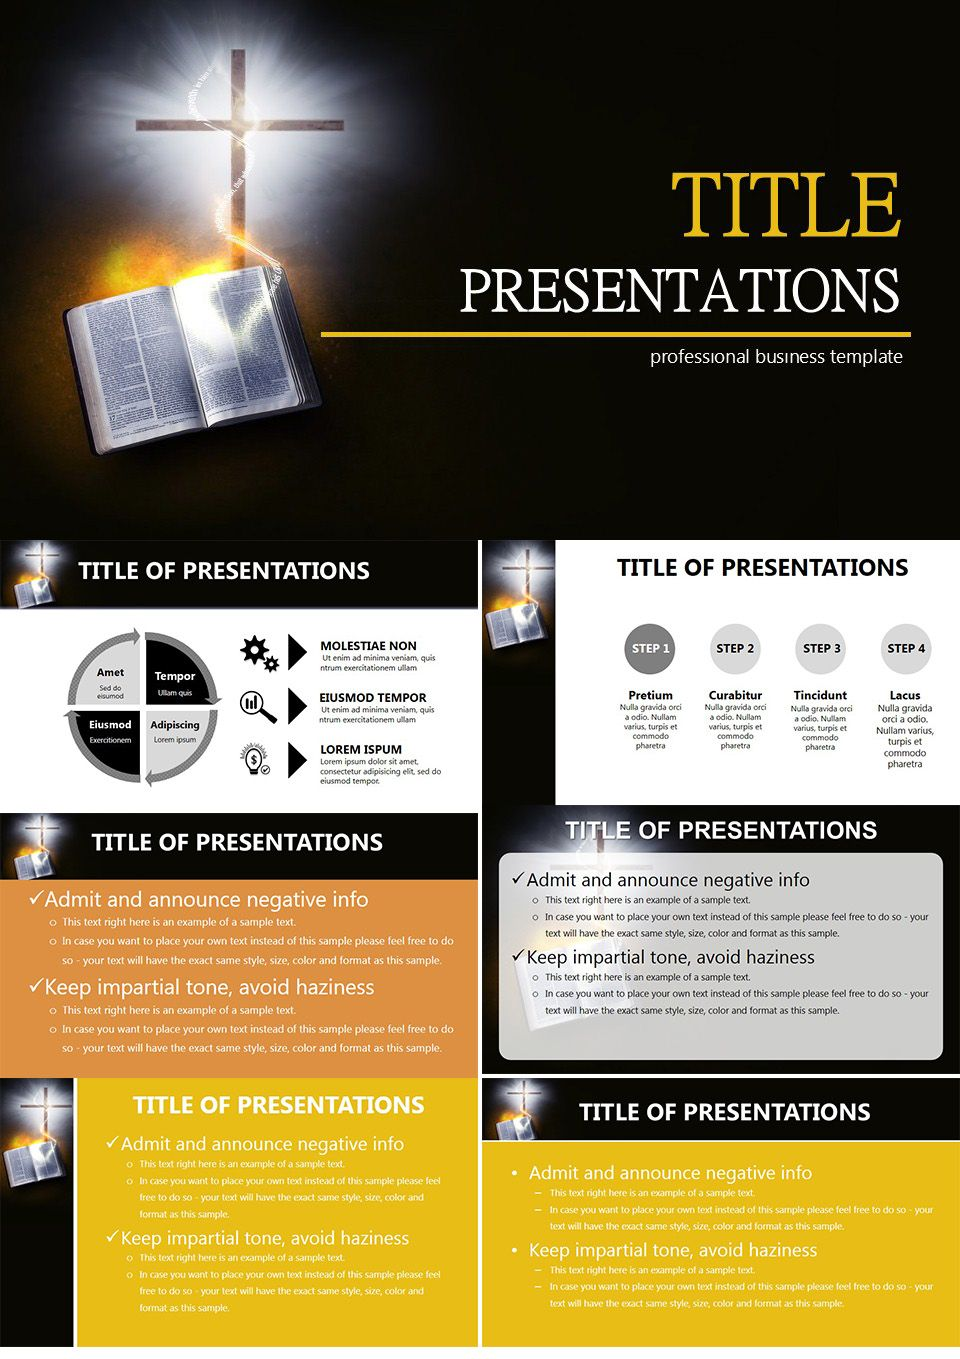 Gospel and cross powerpoint templates pinterest template gospel and cross powerpoint templates toneelgroepblik Choice Image